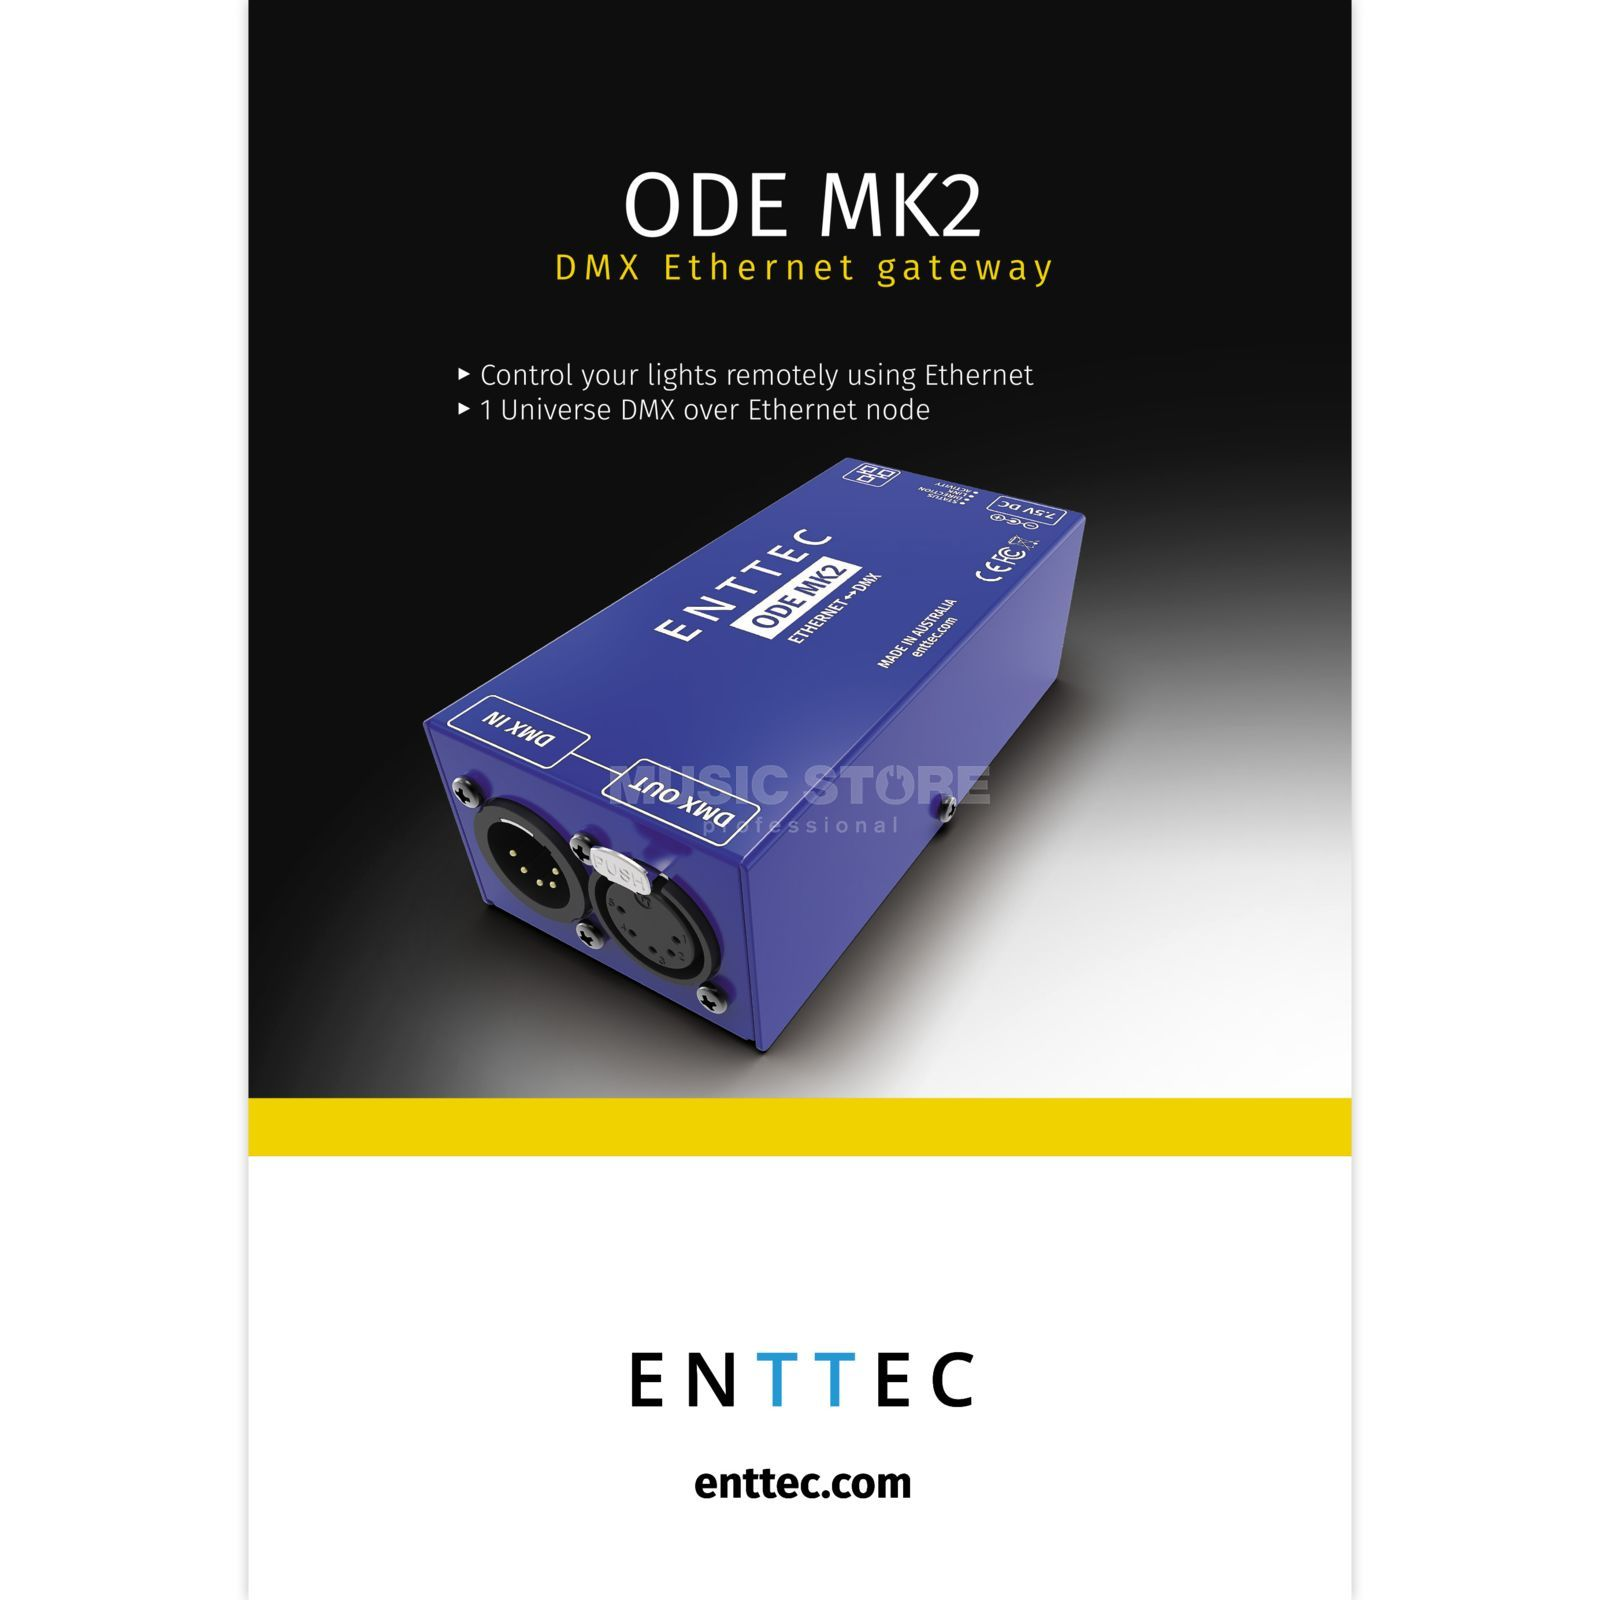 Enttec ODE Mk2 Product Image